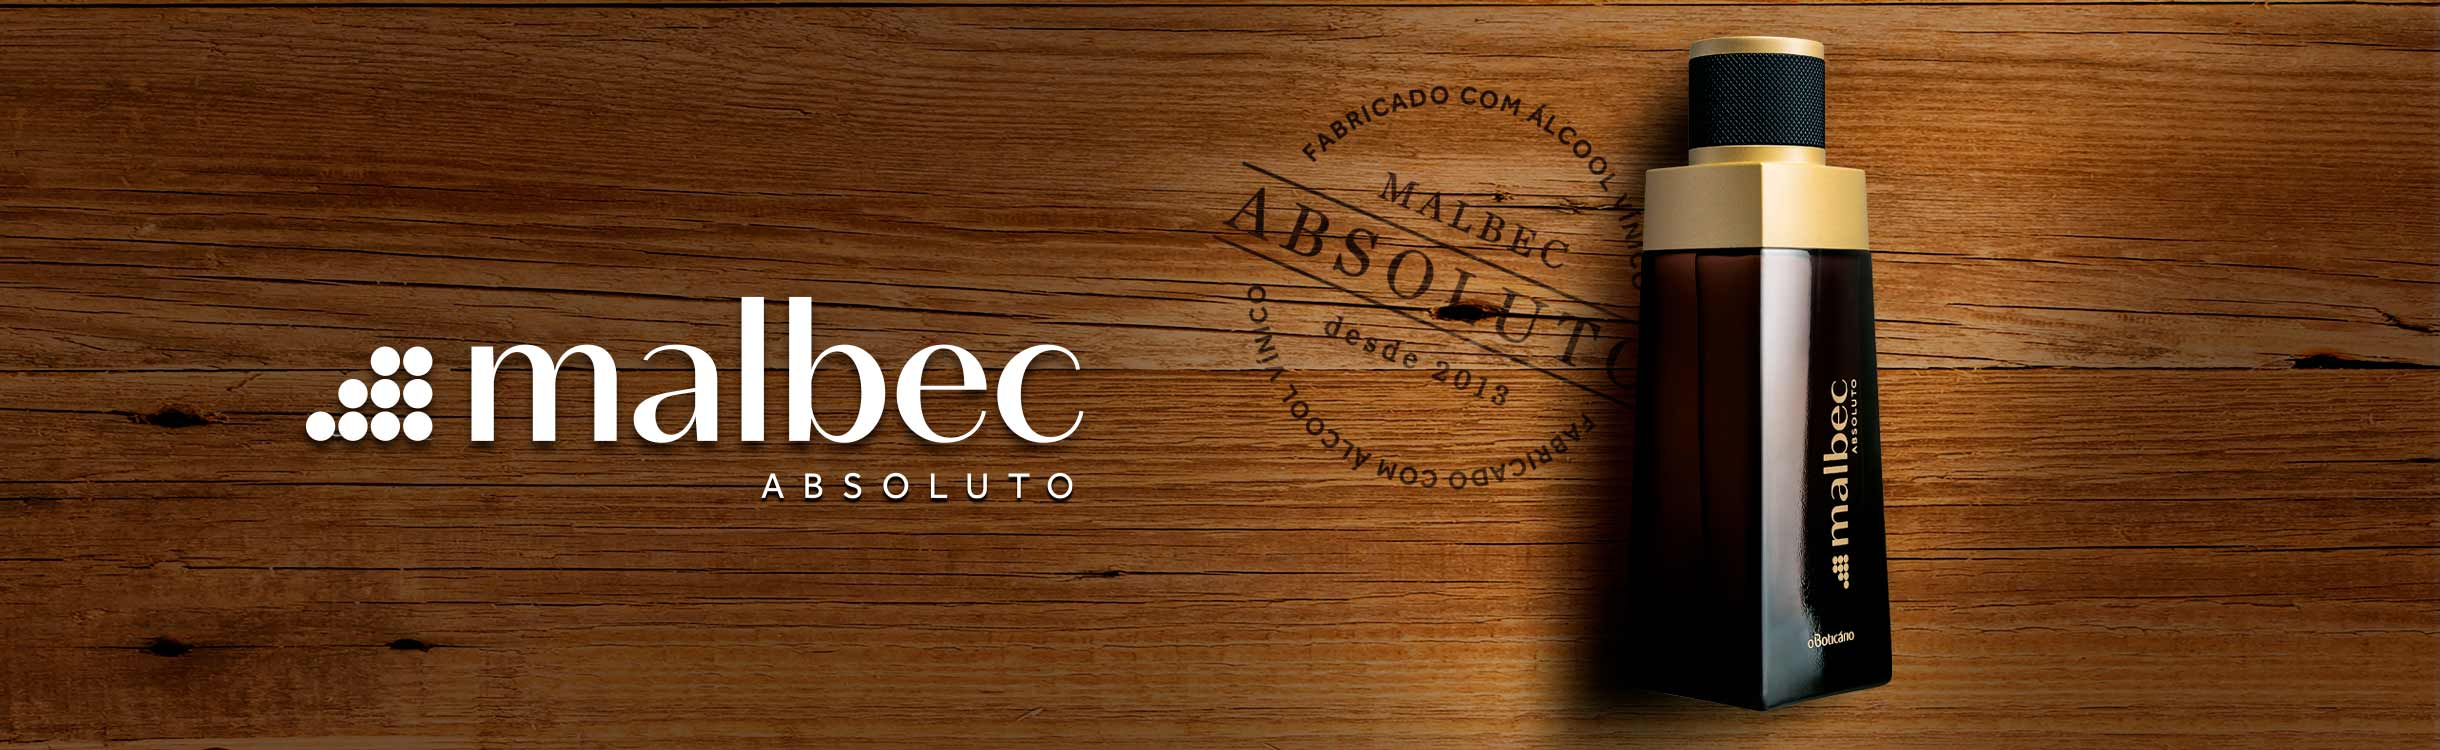 Malbec Absoluto